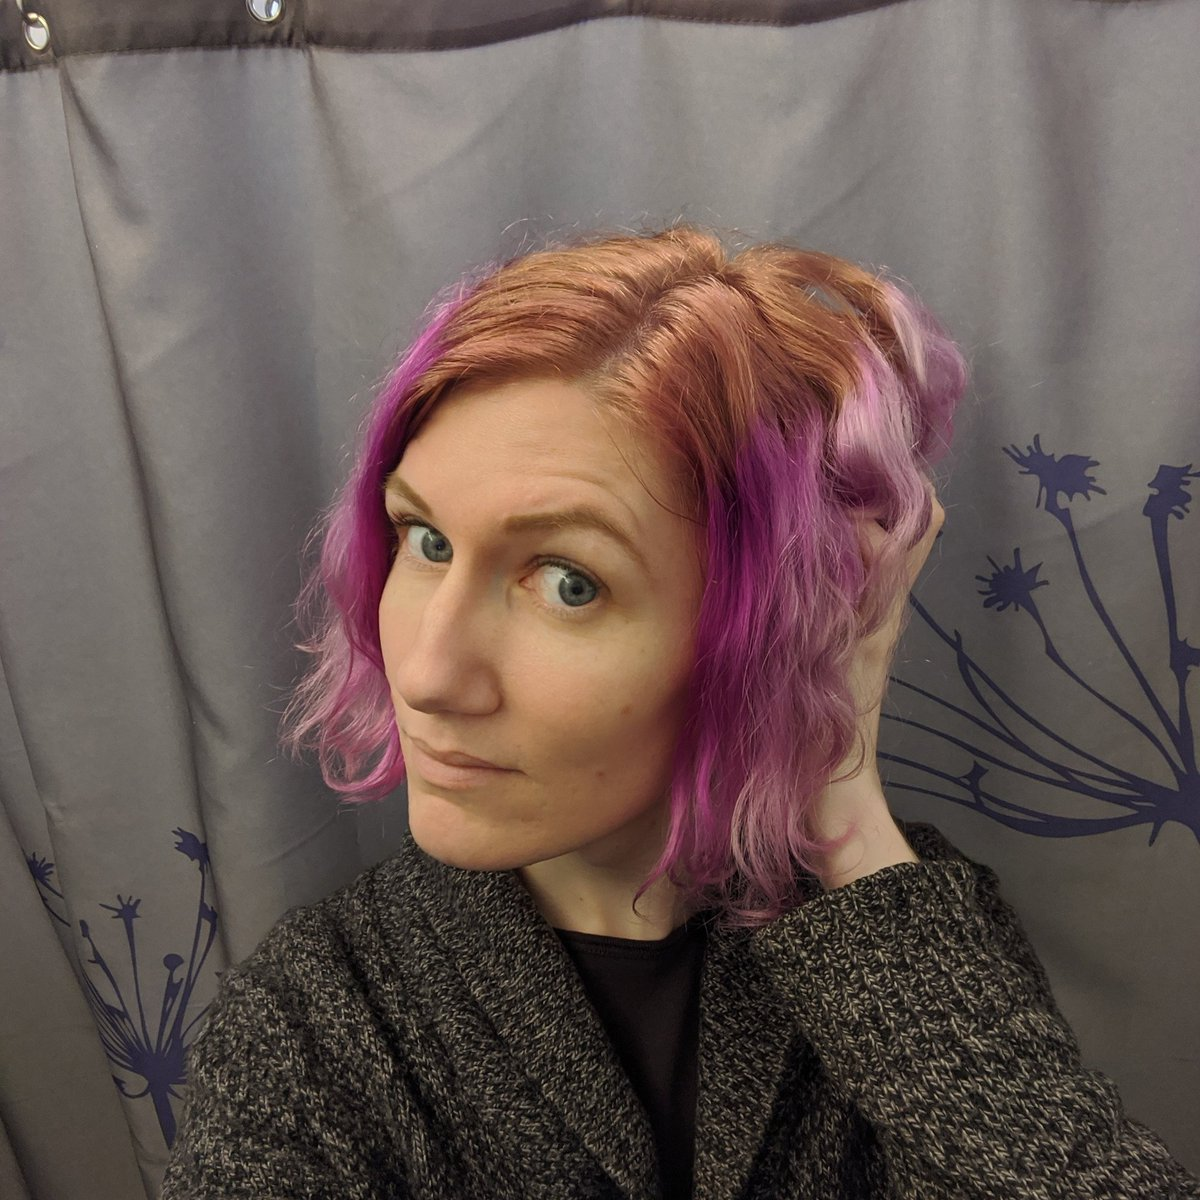 So I tried dying my hair purple the other day and it definitely turned out much more... magenta. Its cute, but its not what I was going for 😅 Gonna try for round two today with a more true deep purple mixed with some blue 💜